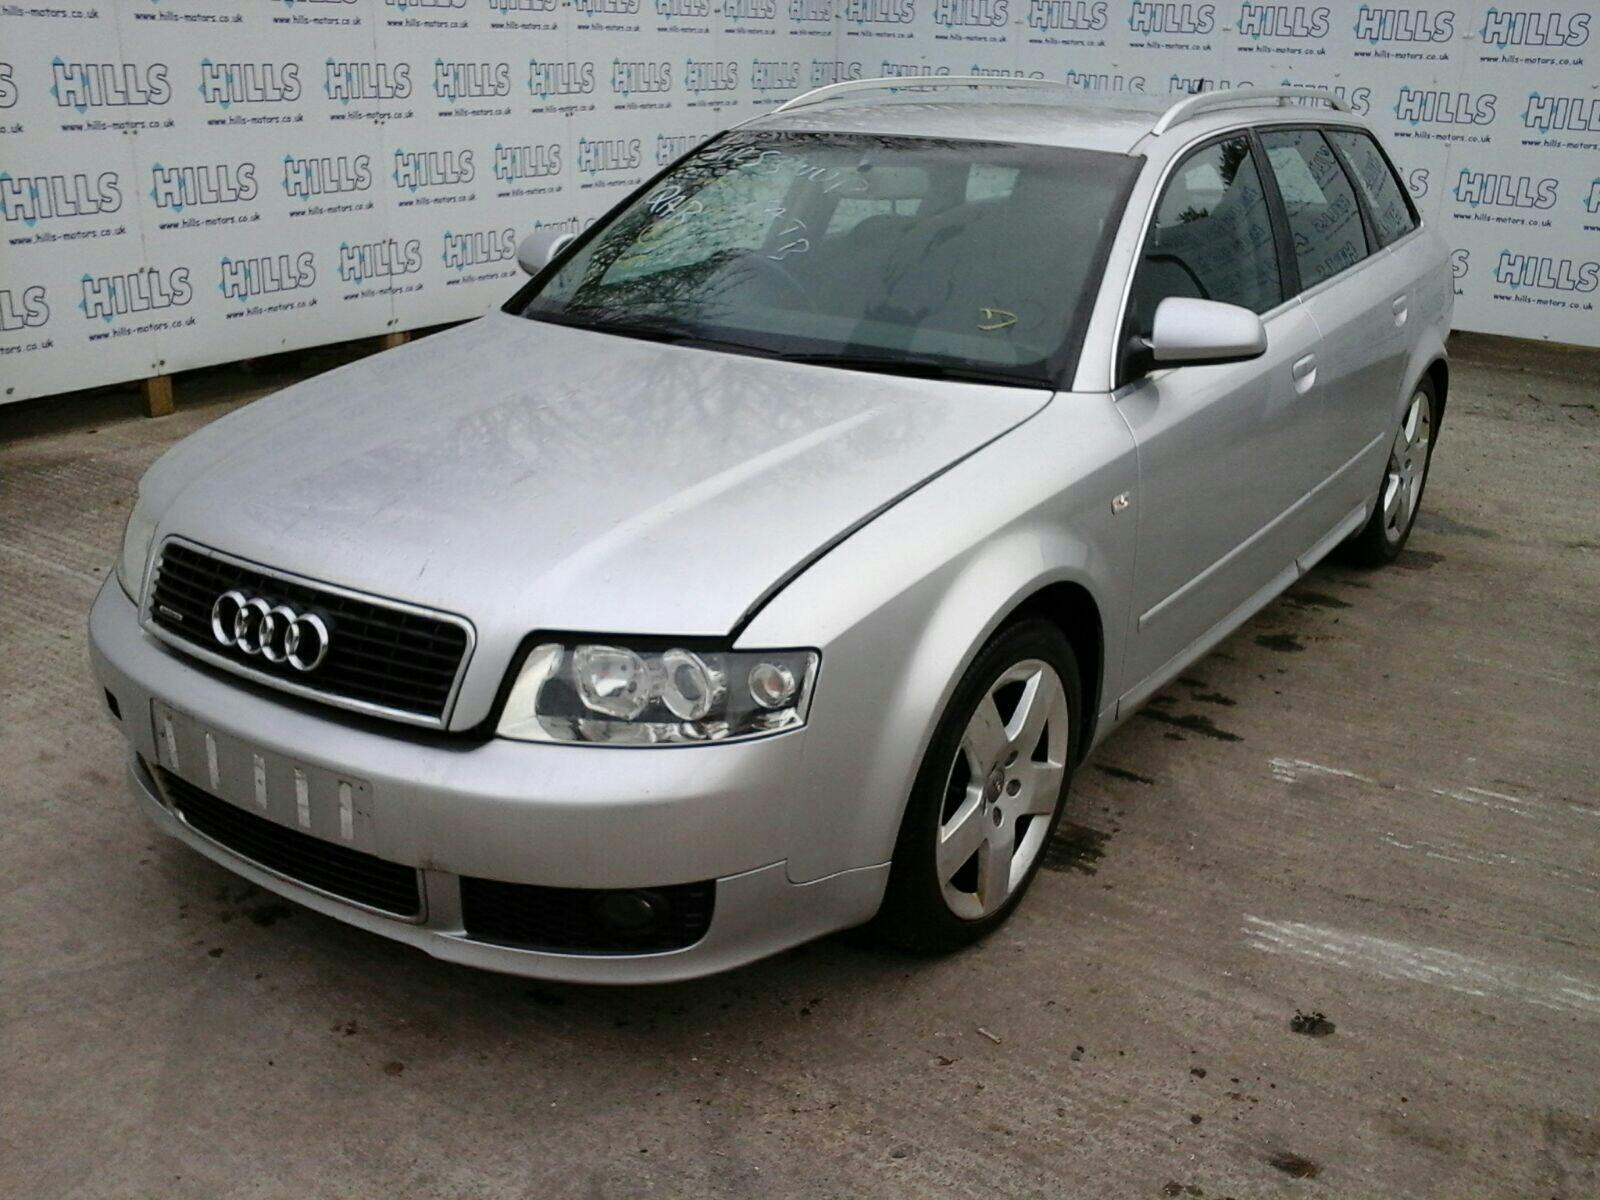 2004 audi a4 3 0 quattro sport b6 01 05 sat nav navigation. Black Bedroom Furniture Sets. Home Design Ideas